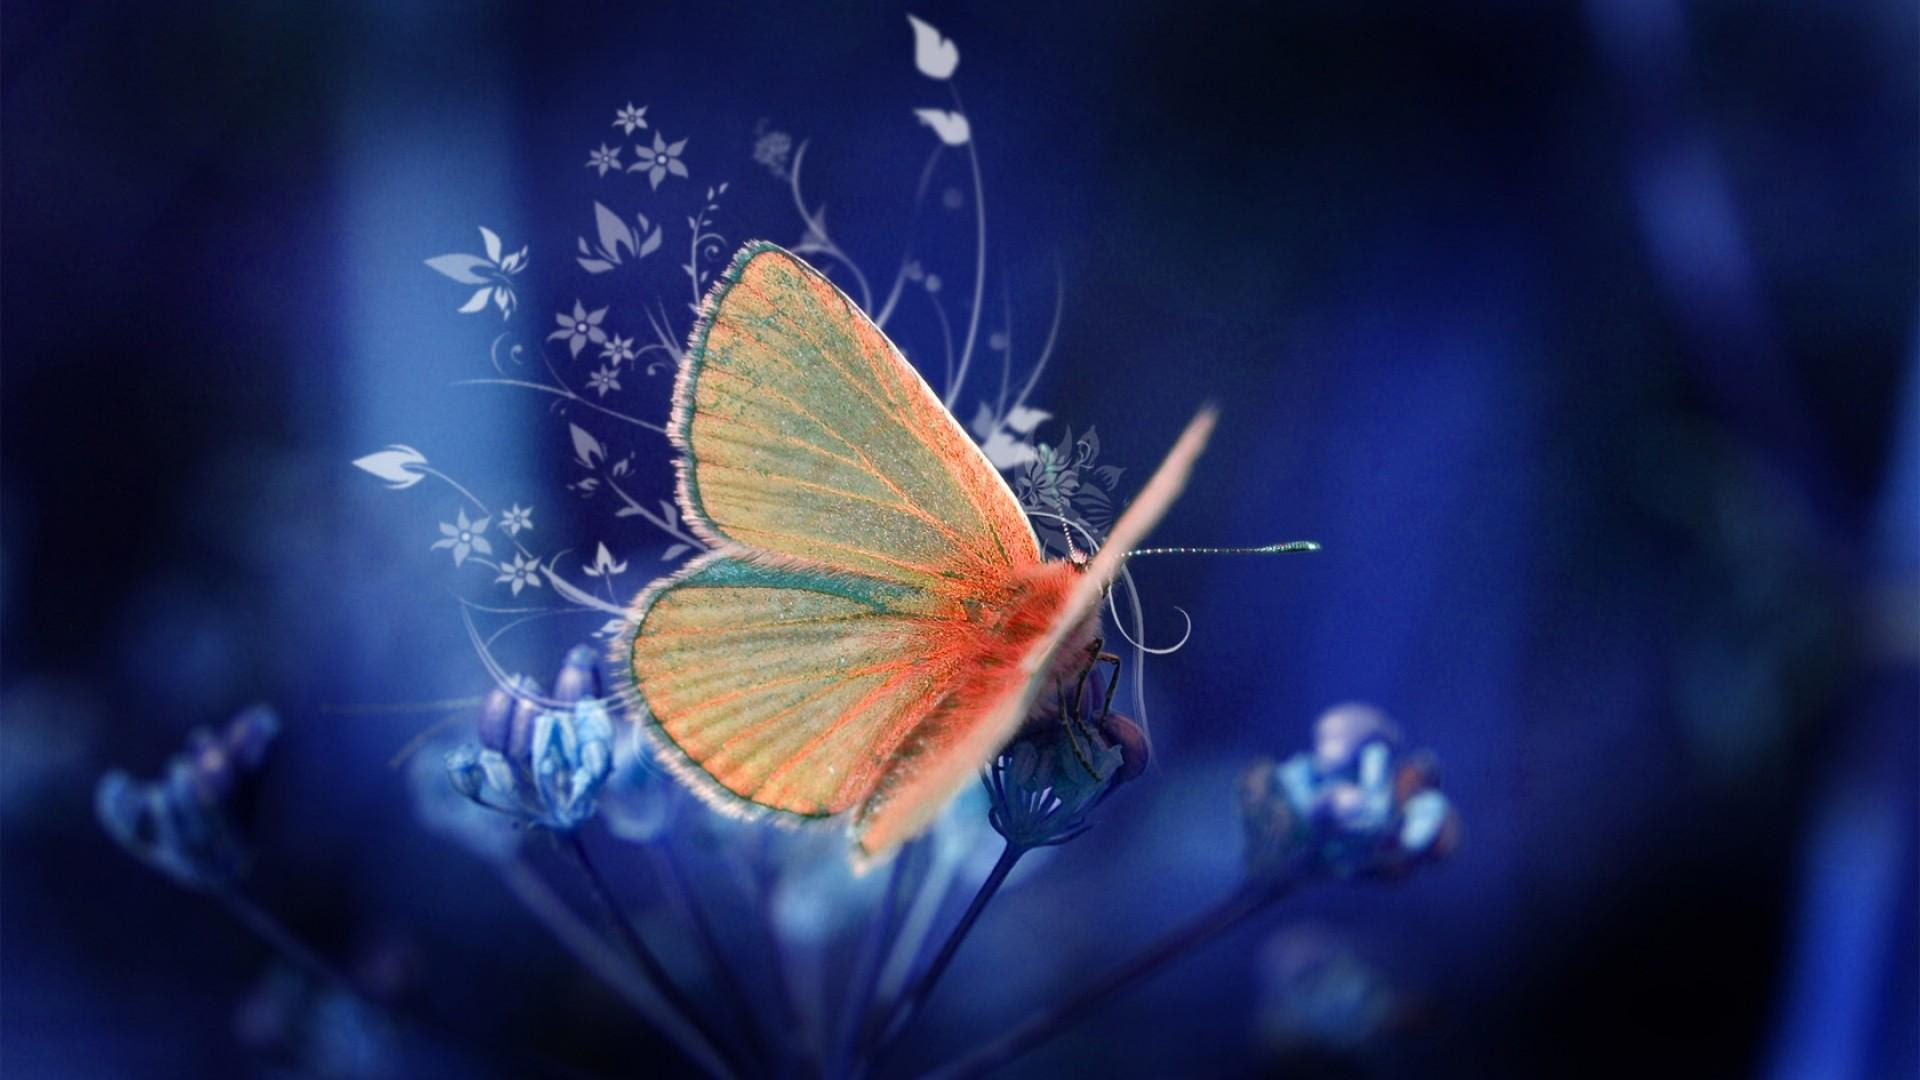 Download 3d Butterfly Butterfly Wallpapers For Your Mobile Cell Phone